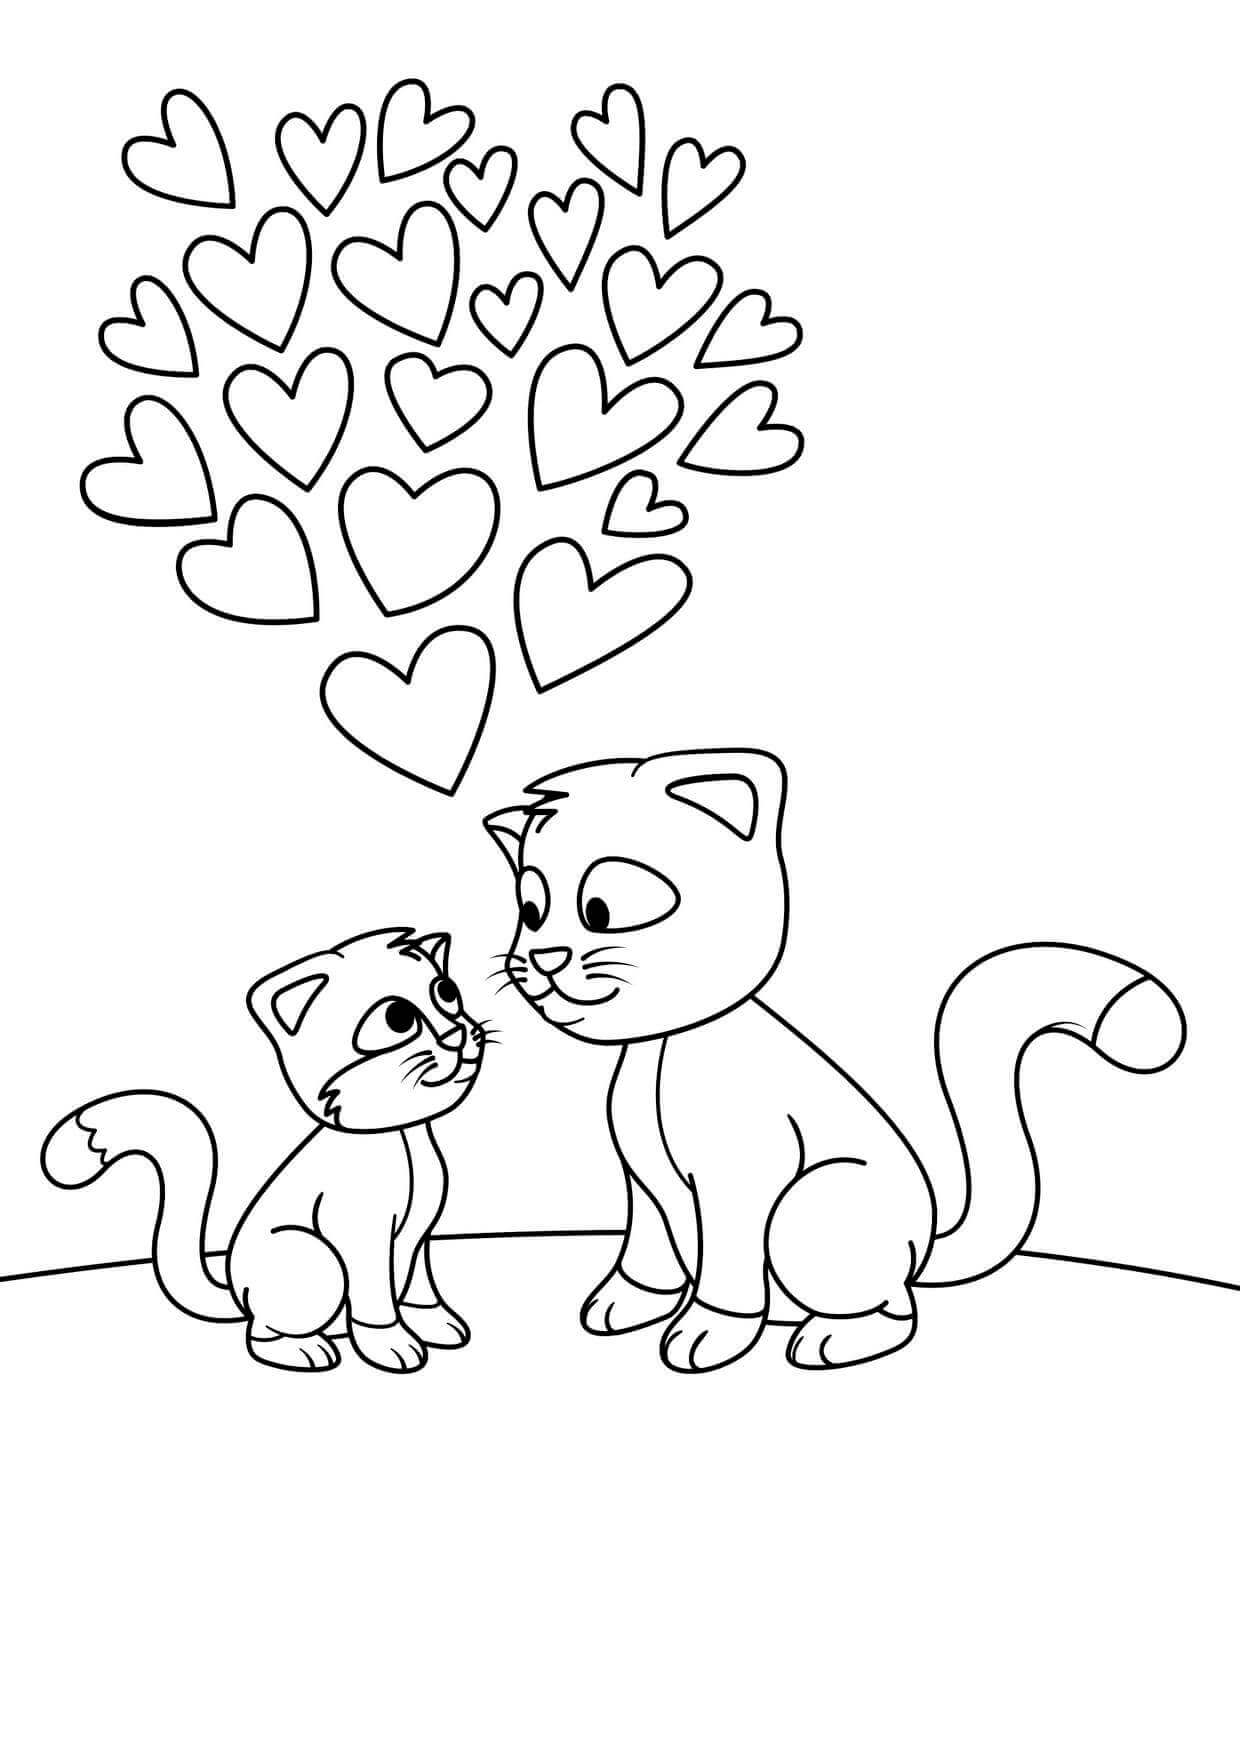 coloring pages for little girls free printable coloring pages for girls little girls for coloring pages